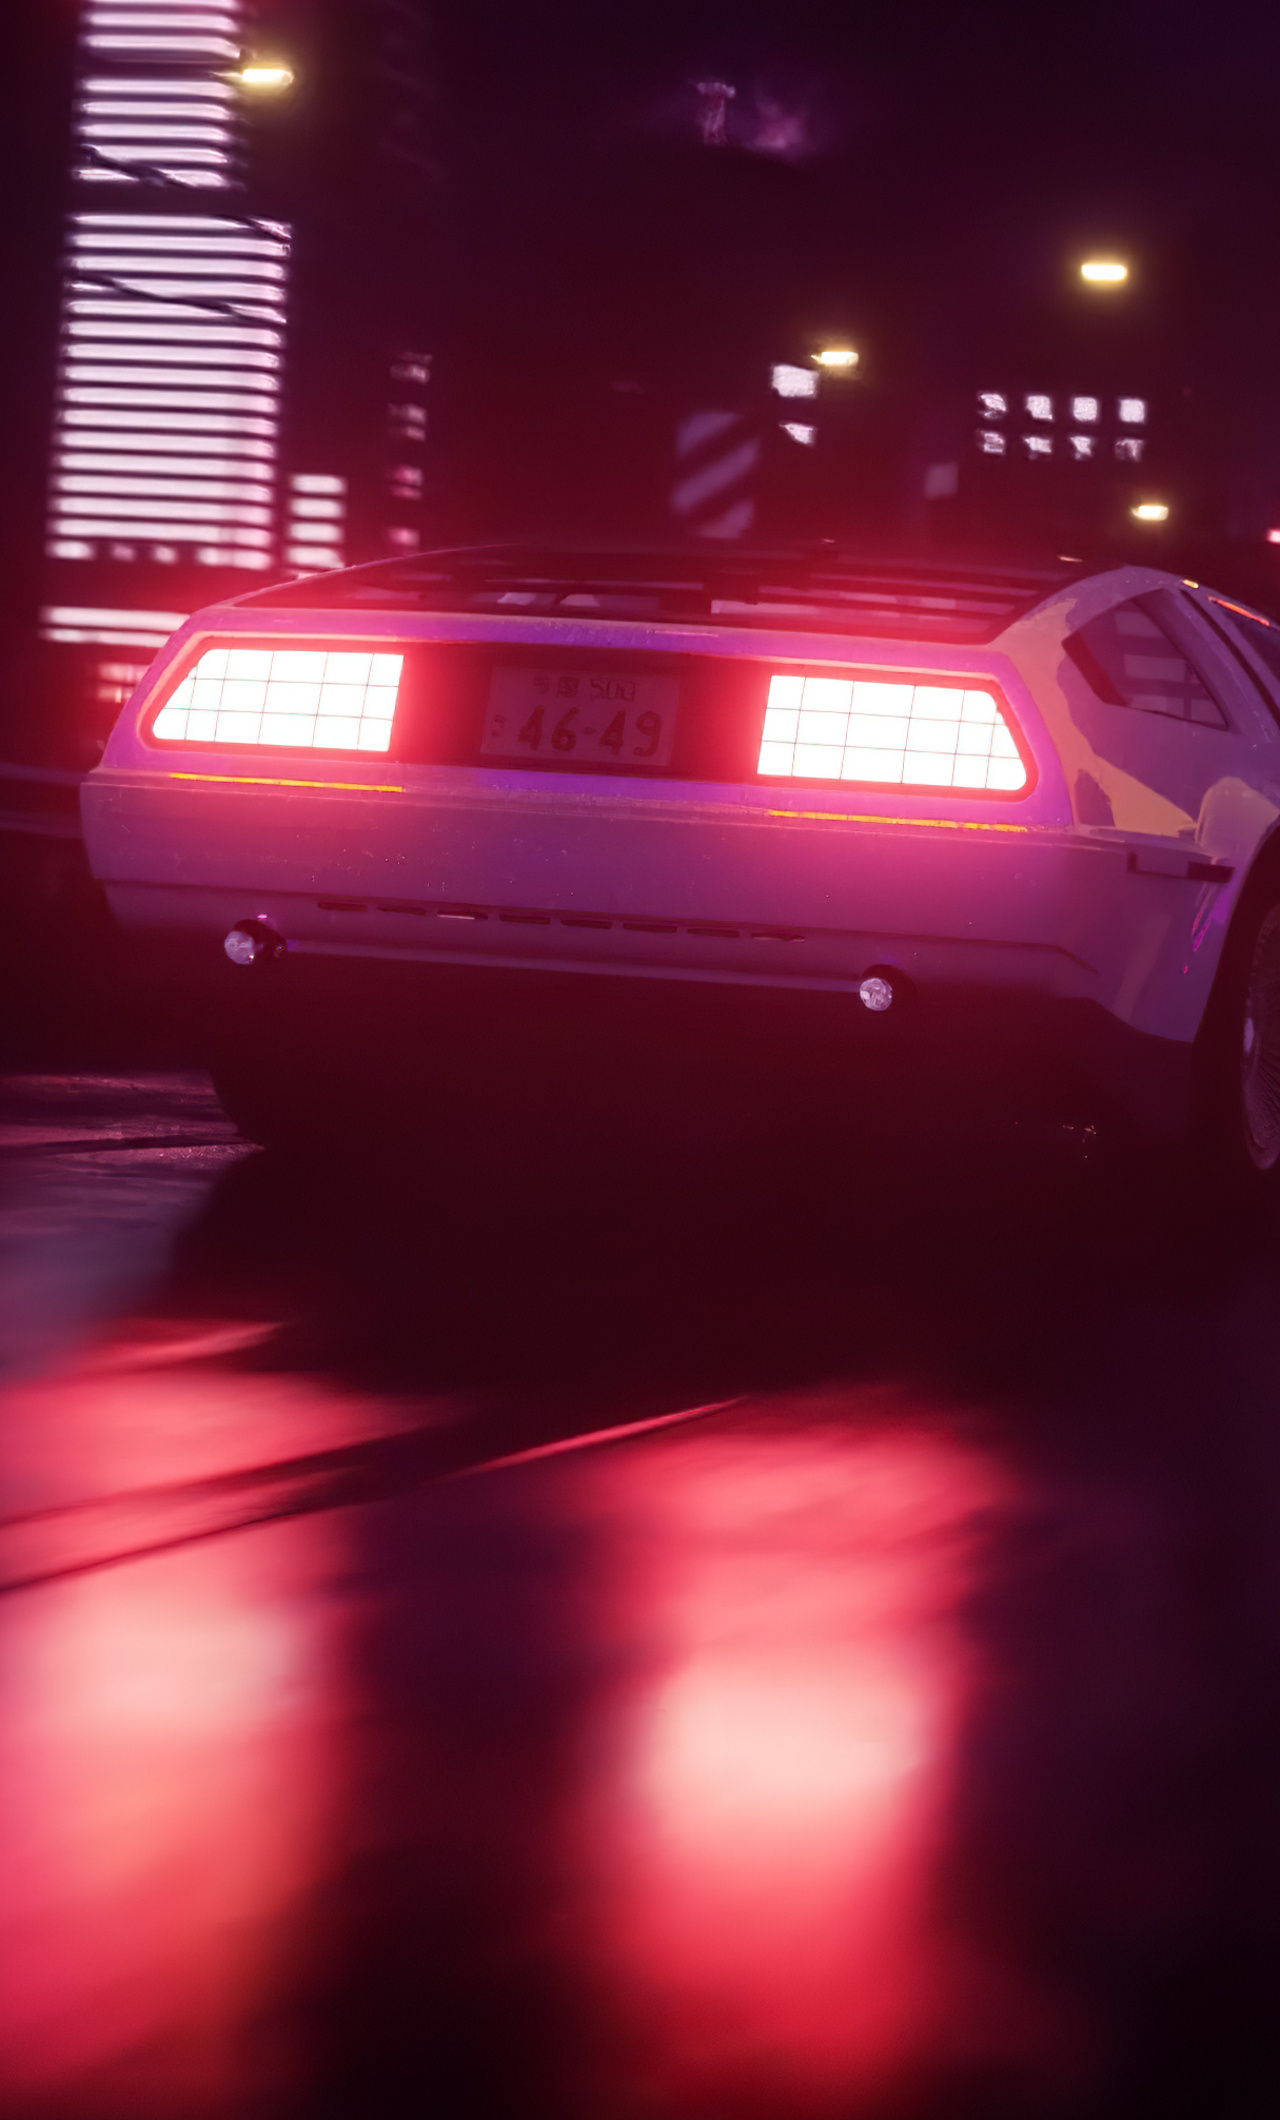 1280x2120 Road Car Vaporwave Iphone 6 Hd 4k Wallpapers Images Backgrounds Photos And Pictures